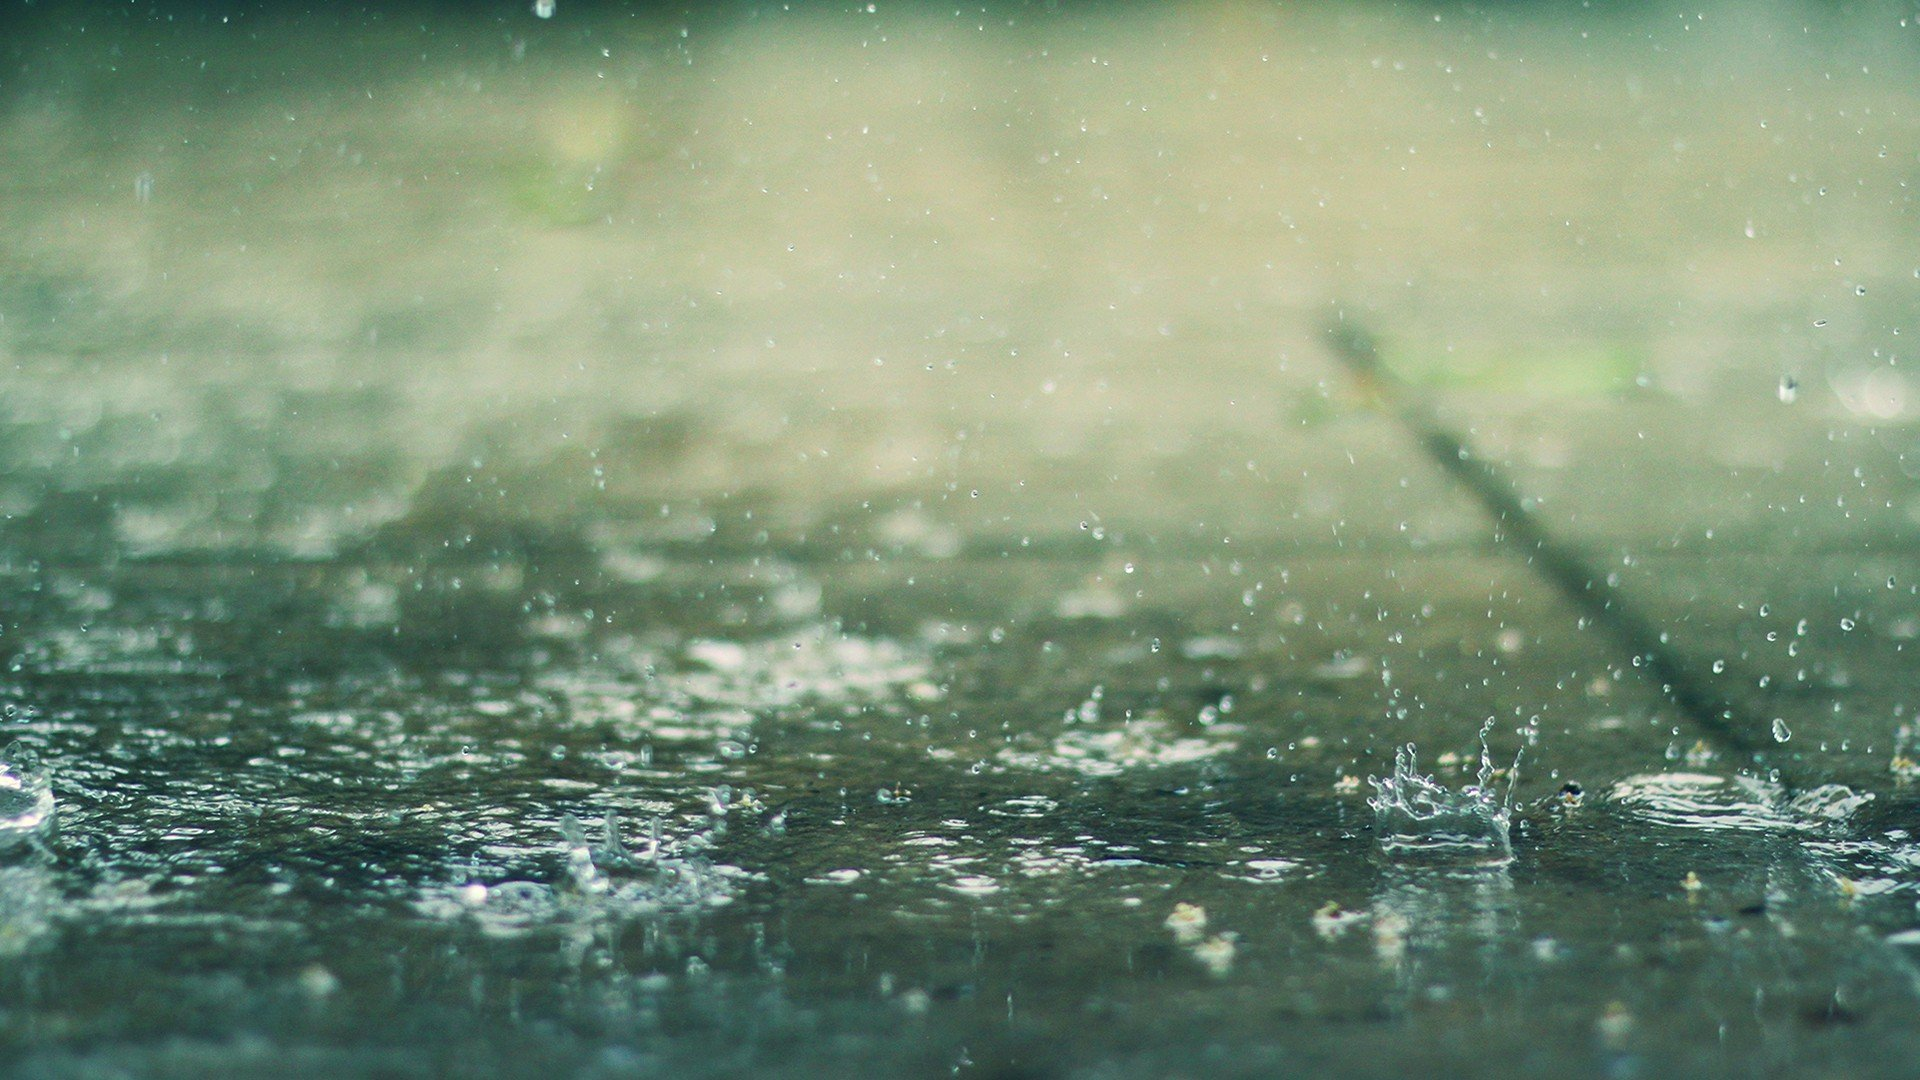 Water rain water drops depth of field splashes wallpaper